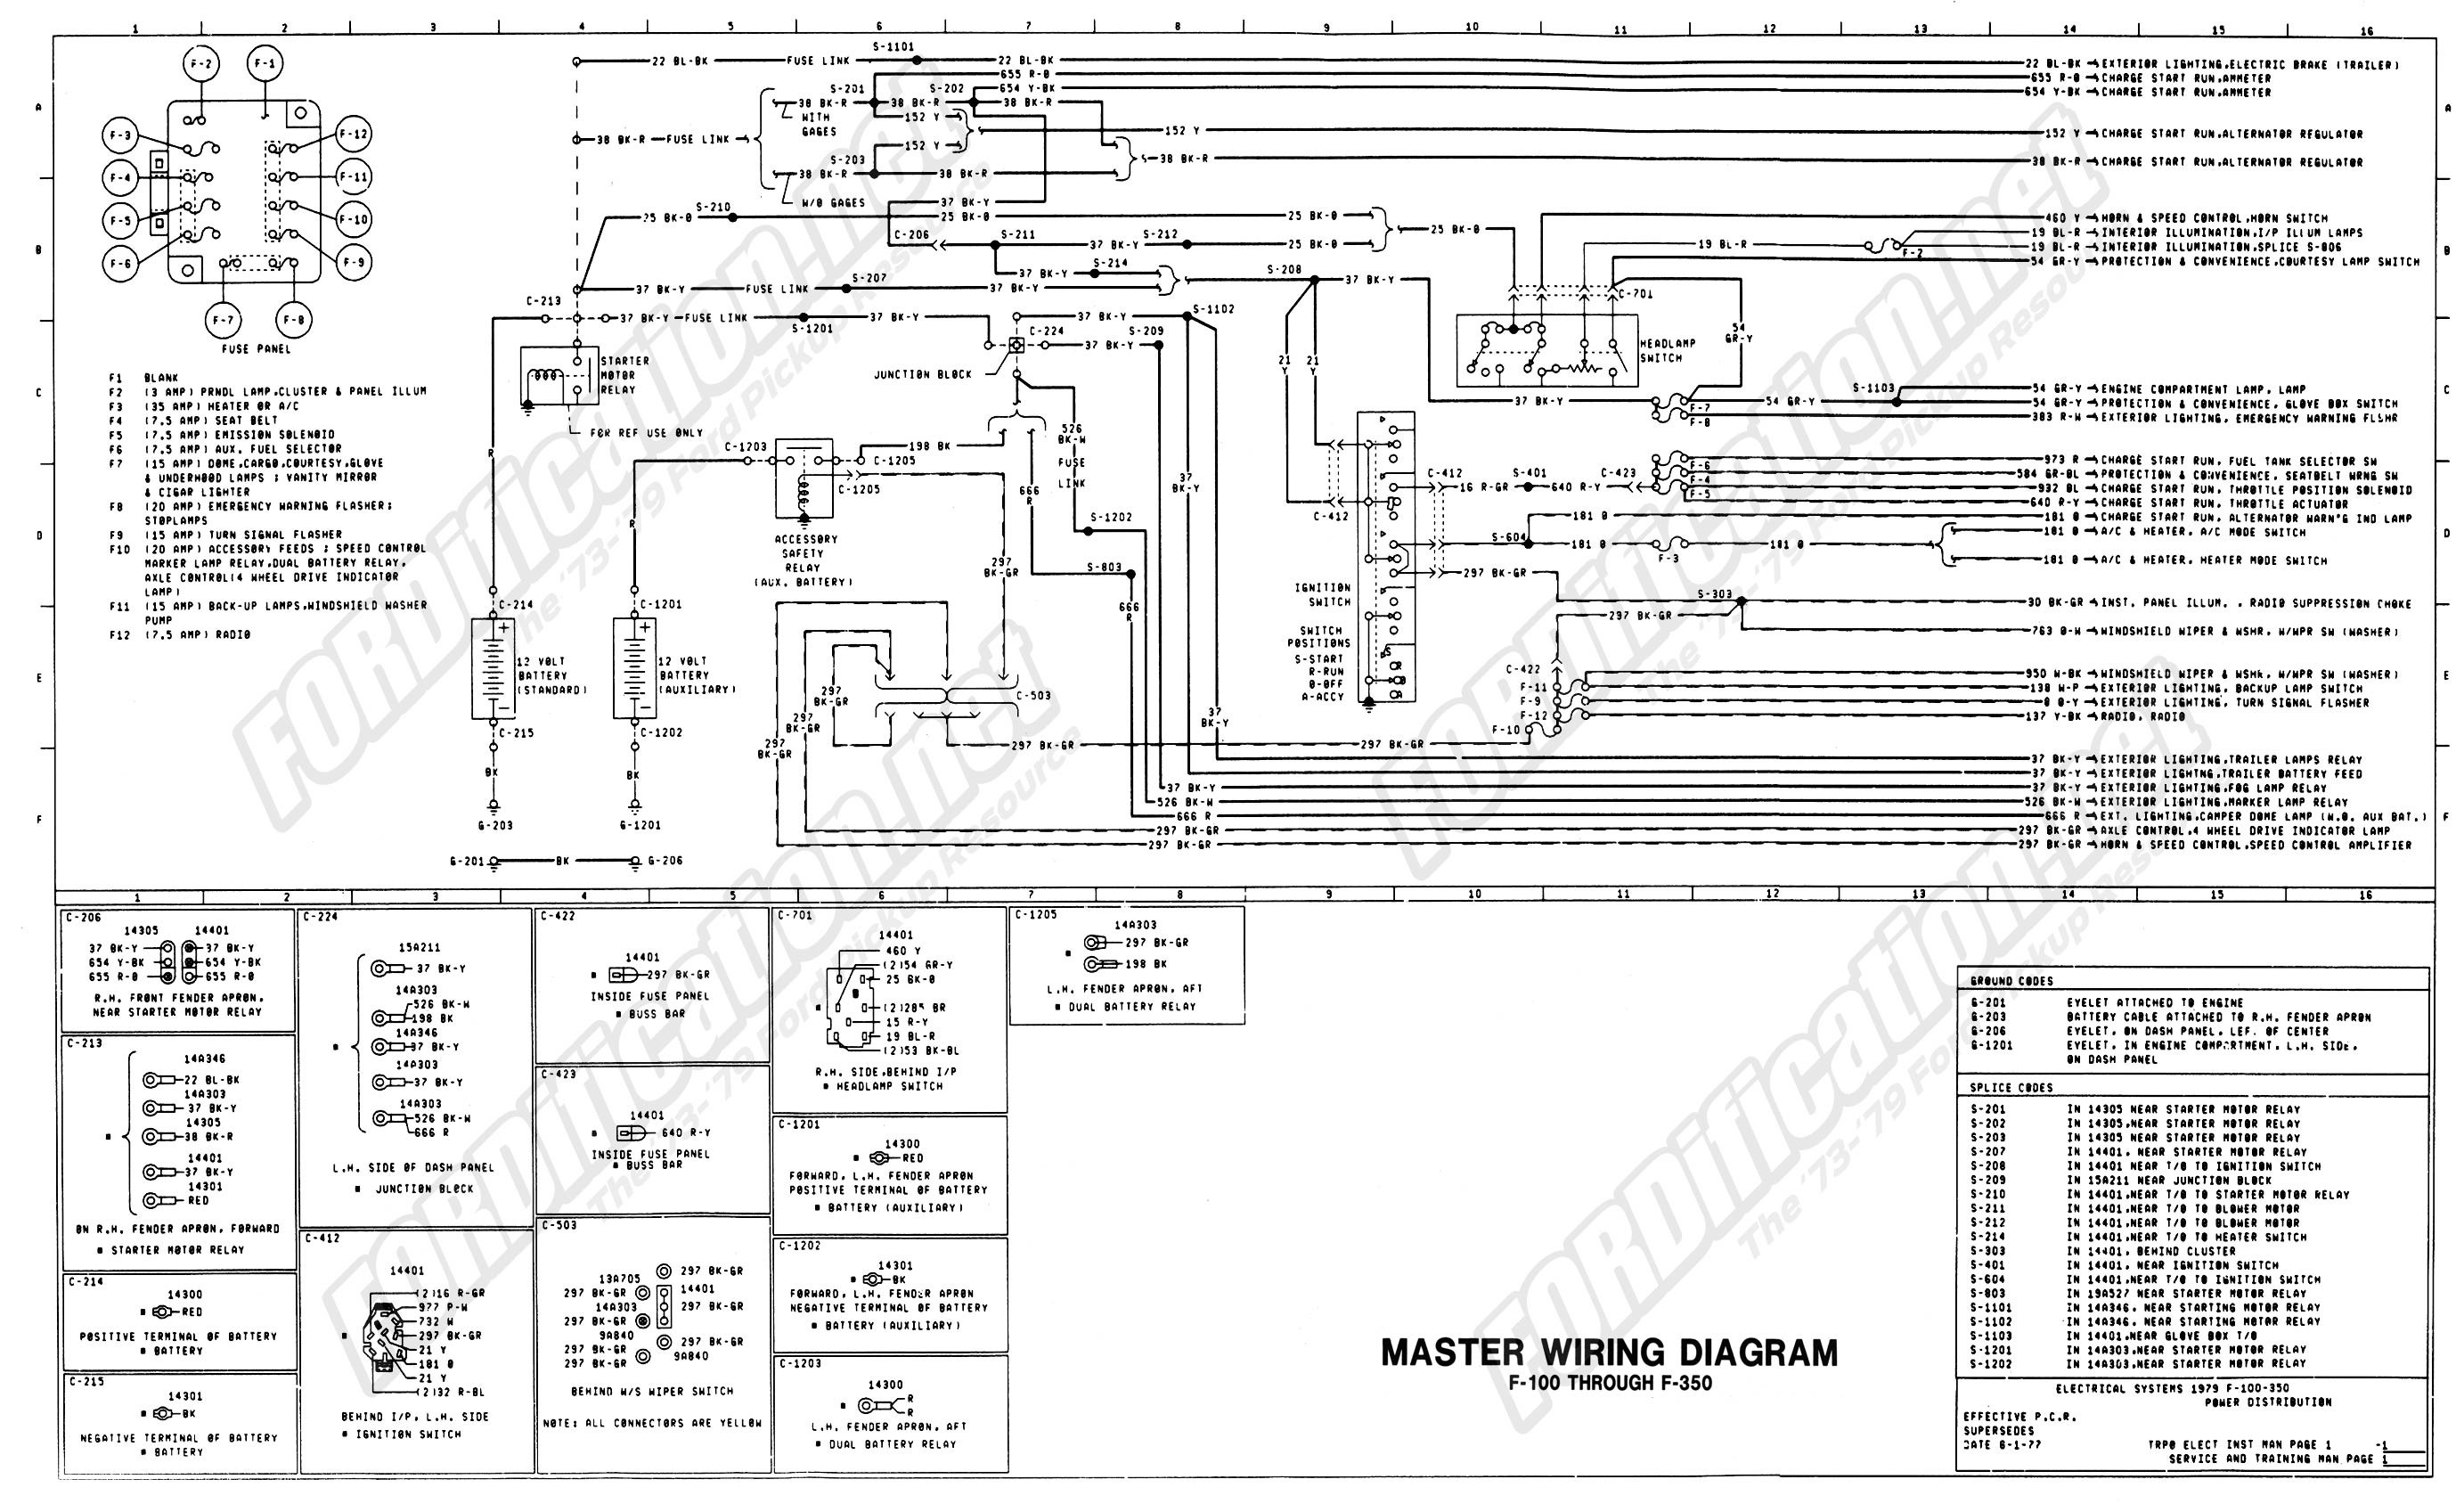 99 sterling wiring diagram wiring diagramswiring diagram 2000 sterling dump truck wiring diagrams sterling truck wiring diagram transmission 99 sterling wiring diagram